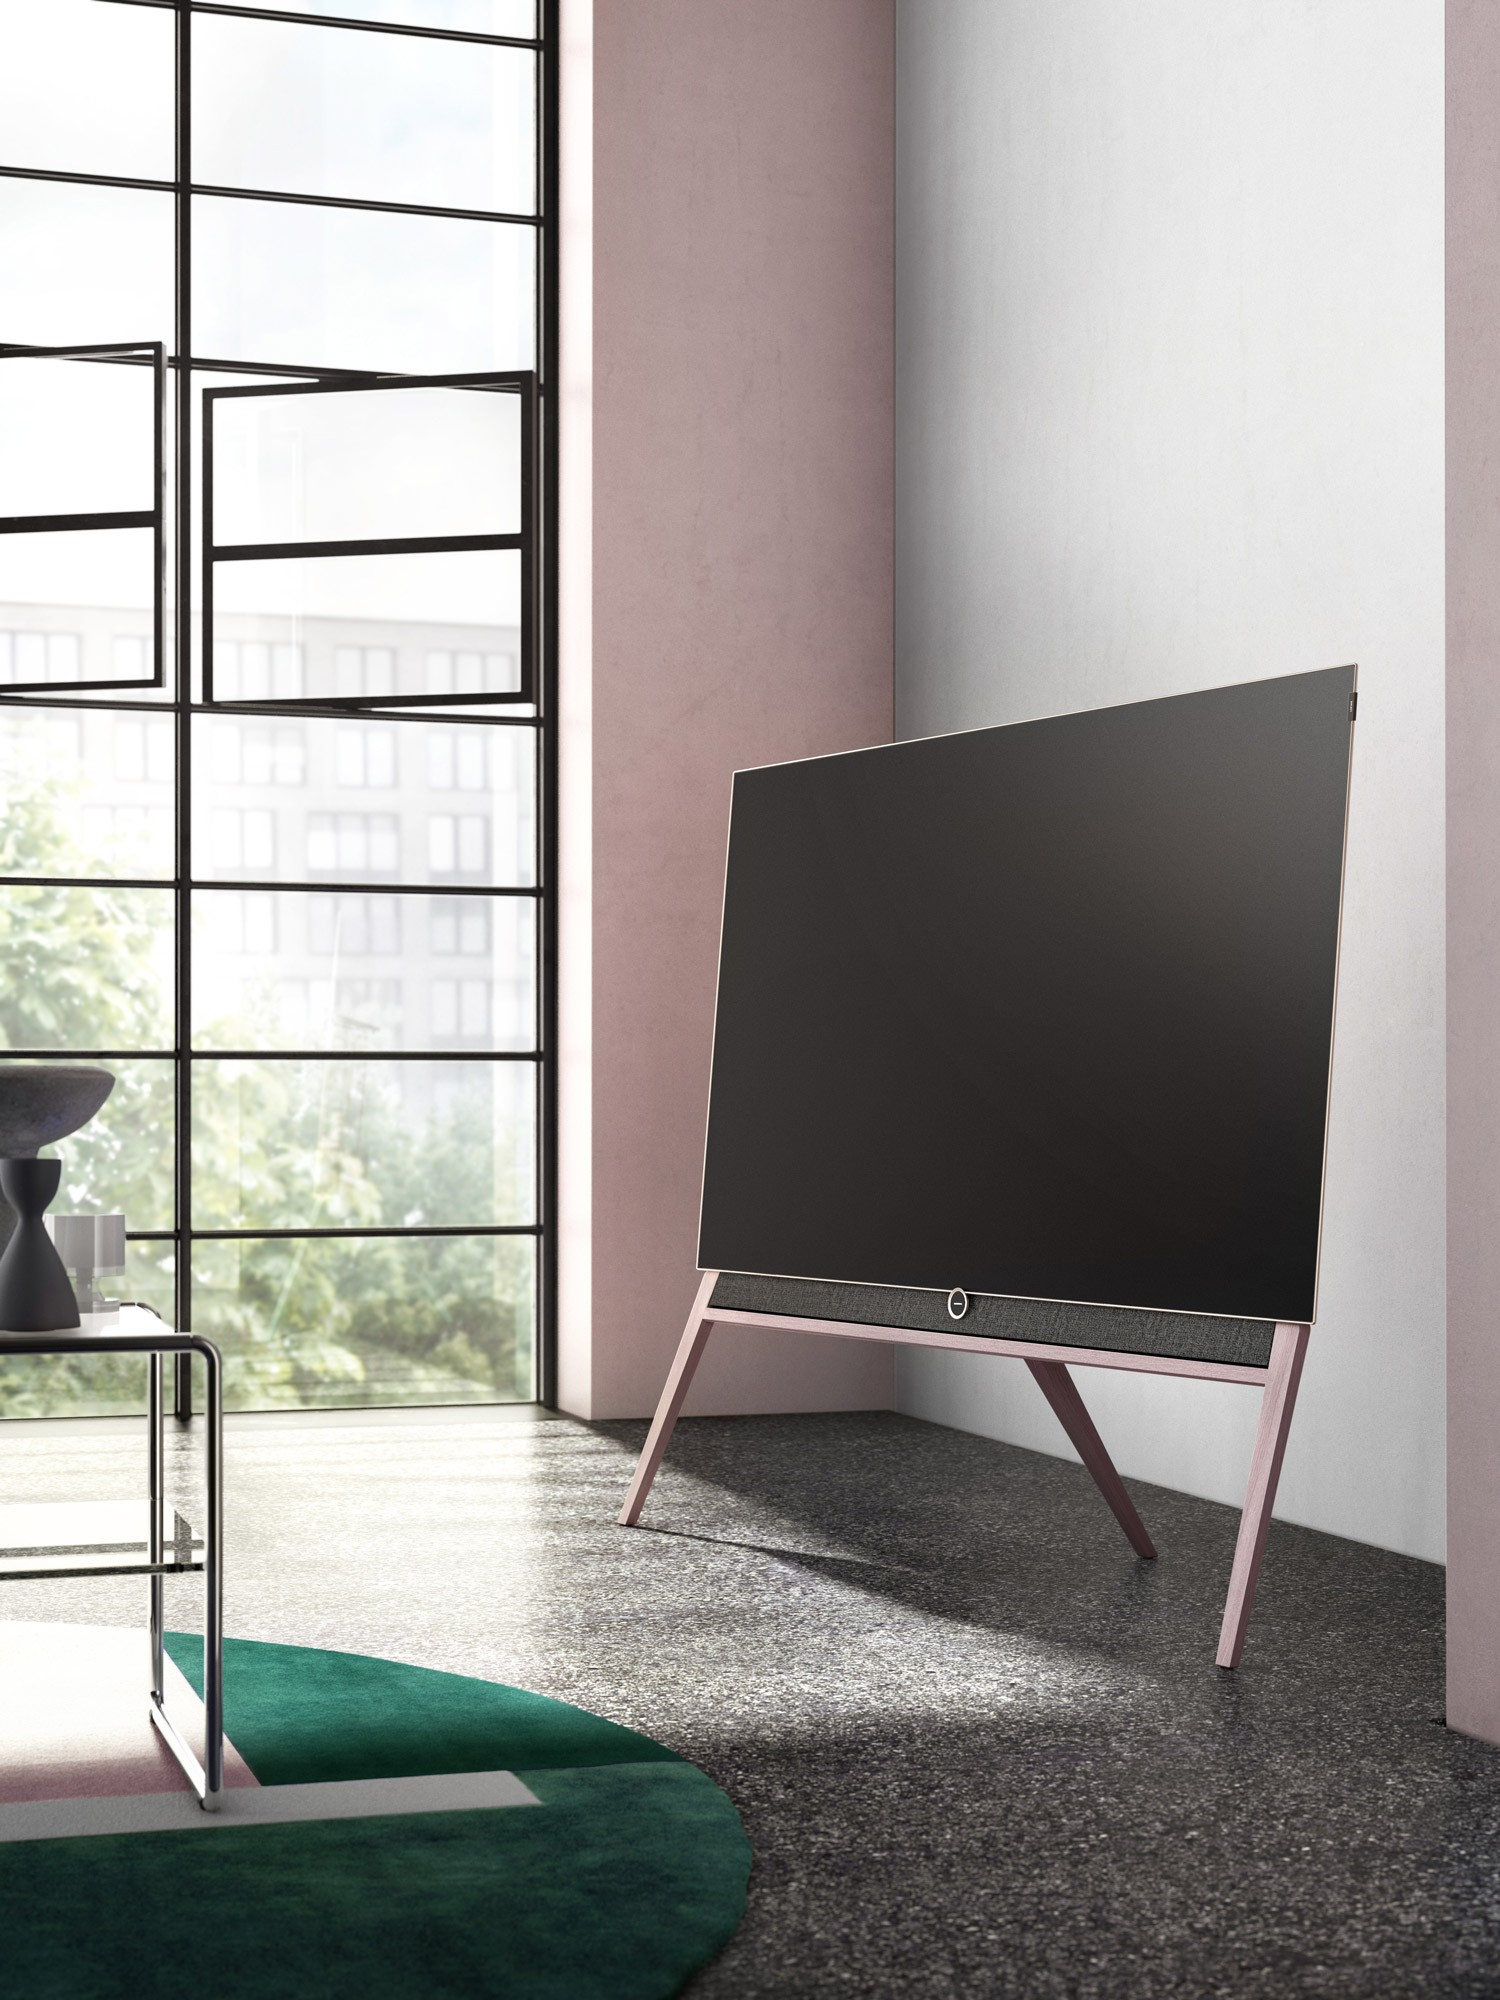 Loewe Bild 5 Colour Code Television Launched IFA 2019 Design and Art Direction Bodo Sperlein